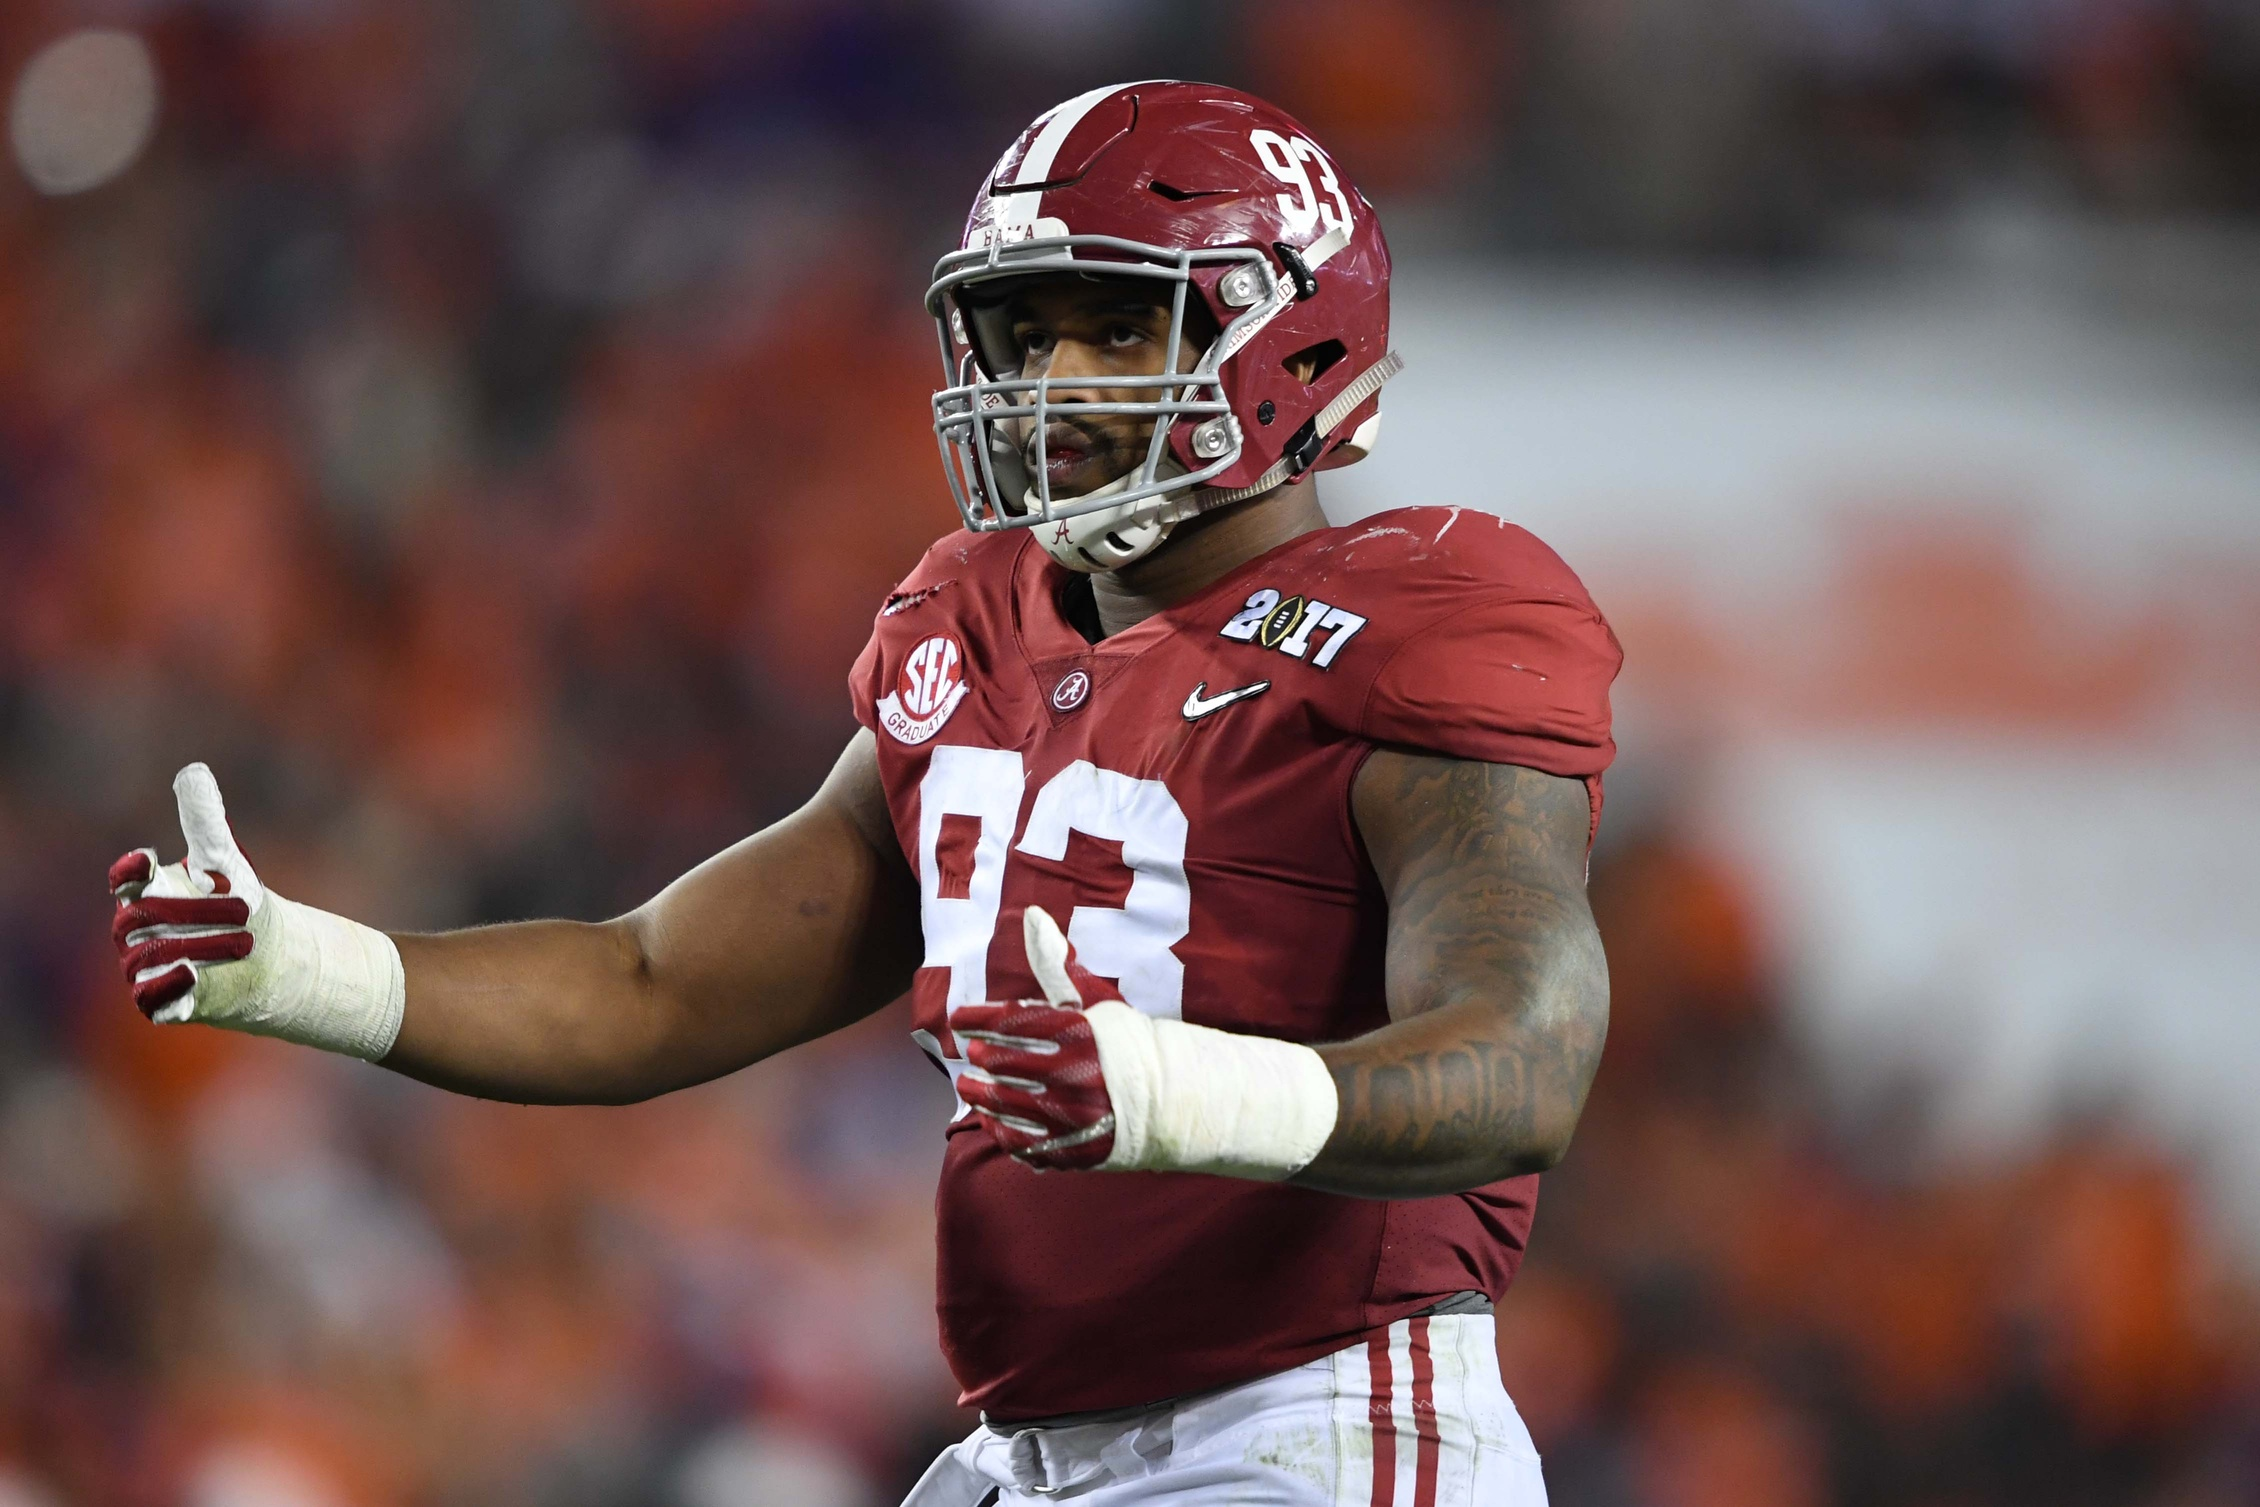 Jan 9, 2017; Tampa, FL, USA; Alabama Crimson Tide defensive lineman Jonathan Allen (93) reacts during the second quarter against the Clemson Tigers in the 2017 College Football Playoff National Championship Game at Raymond James Stadium. Mandatory Credit: John David Mercer-USA TODAY Sports